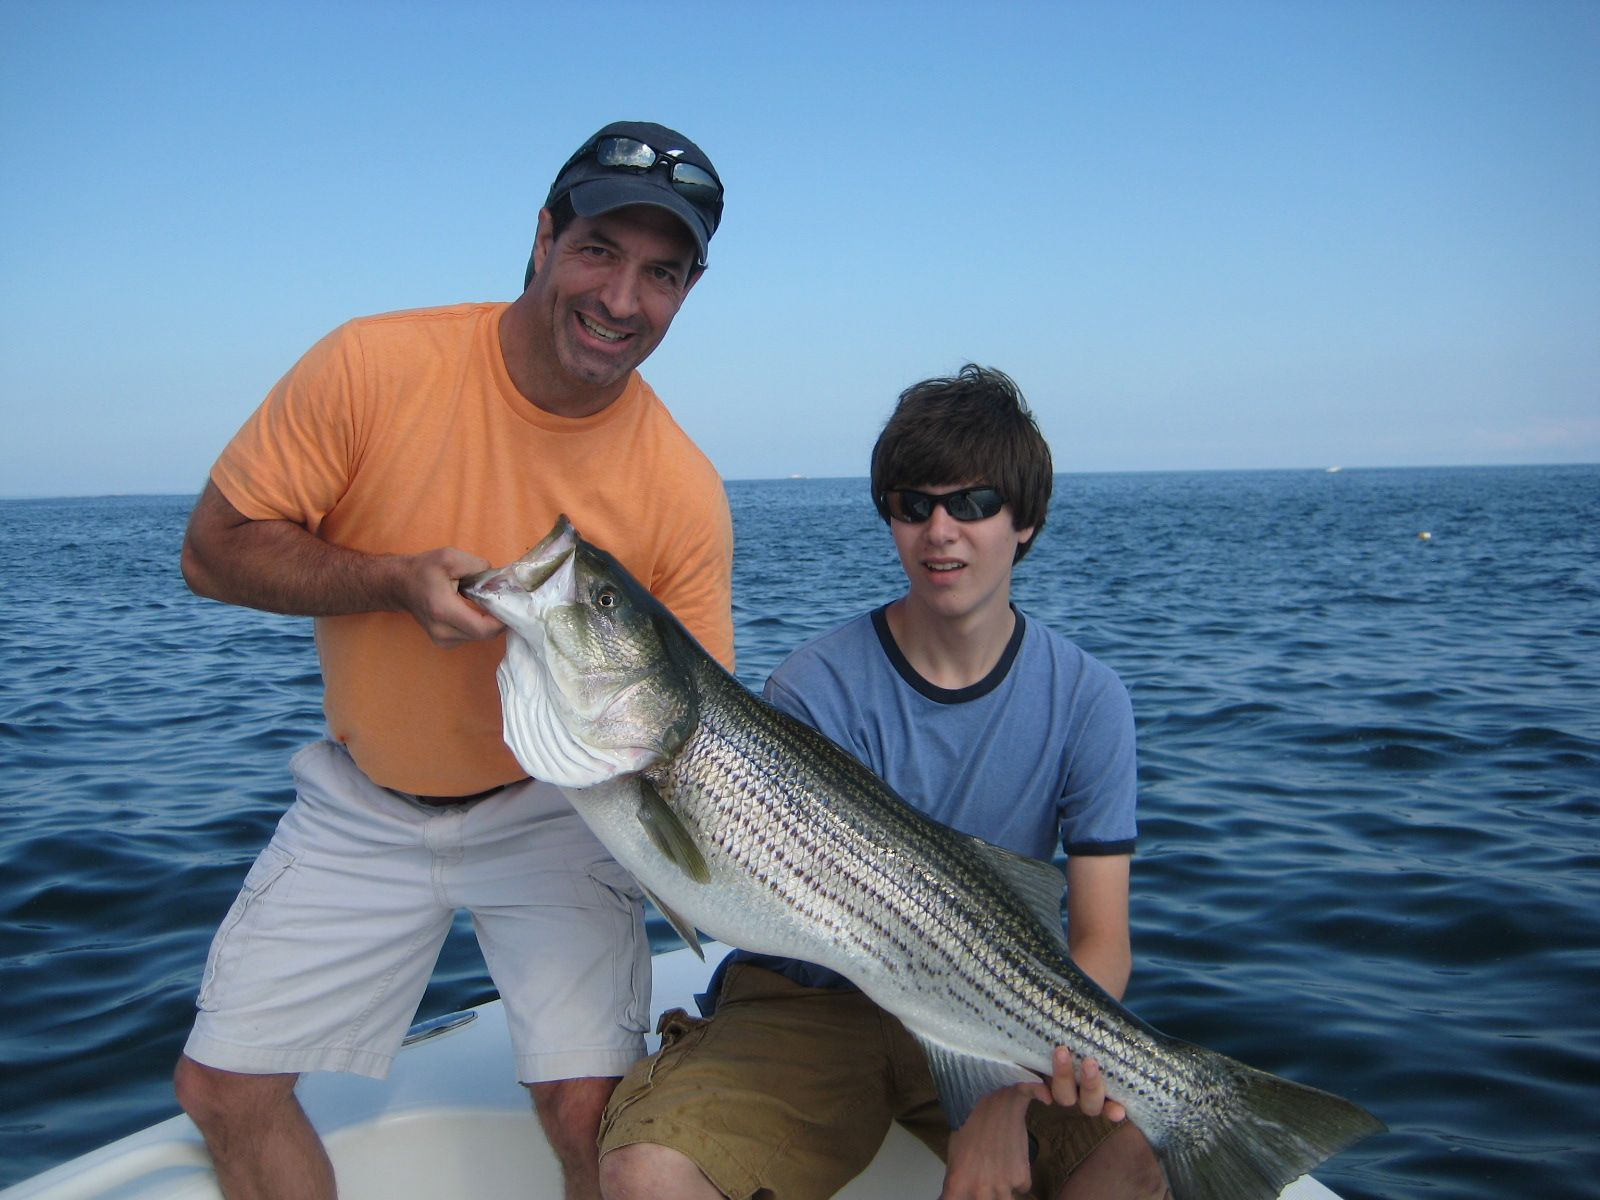 Image of a large striped bass caught by father and son off Boston